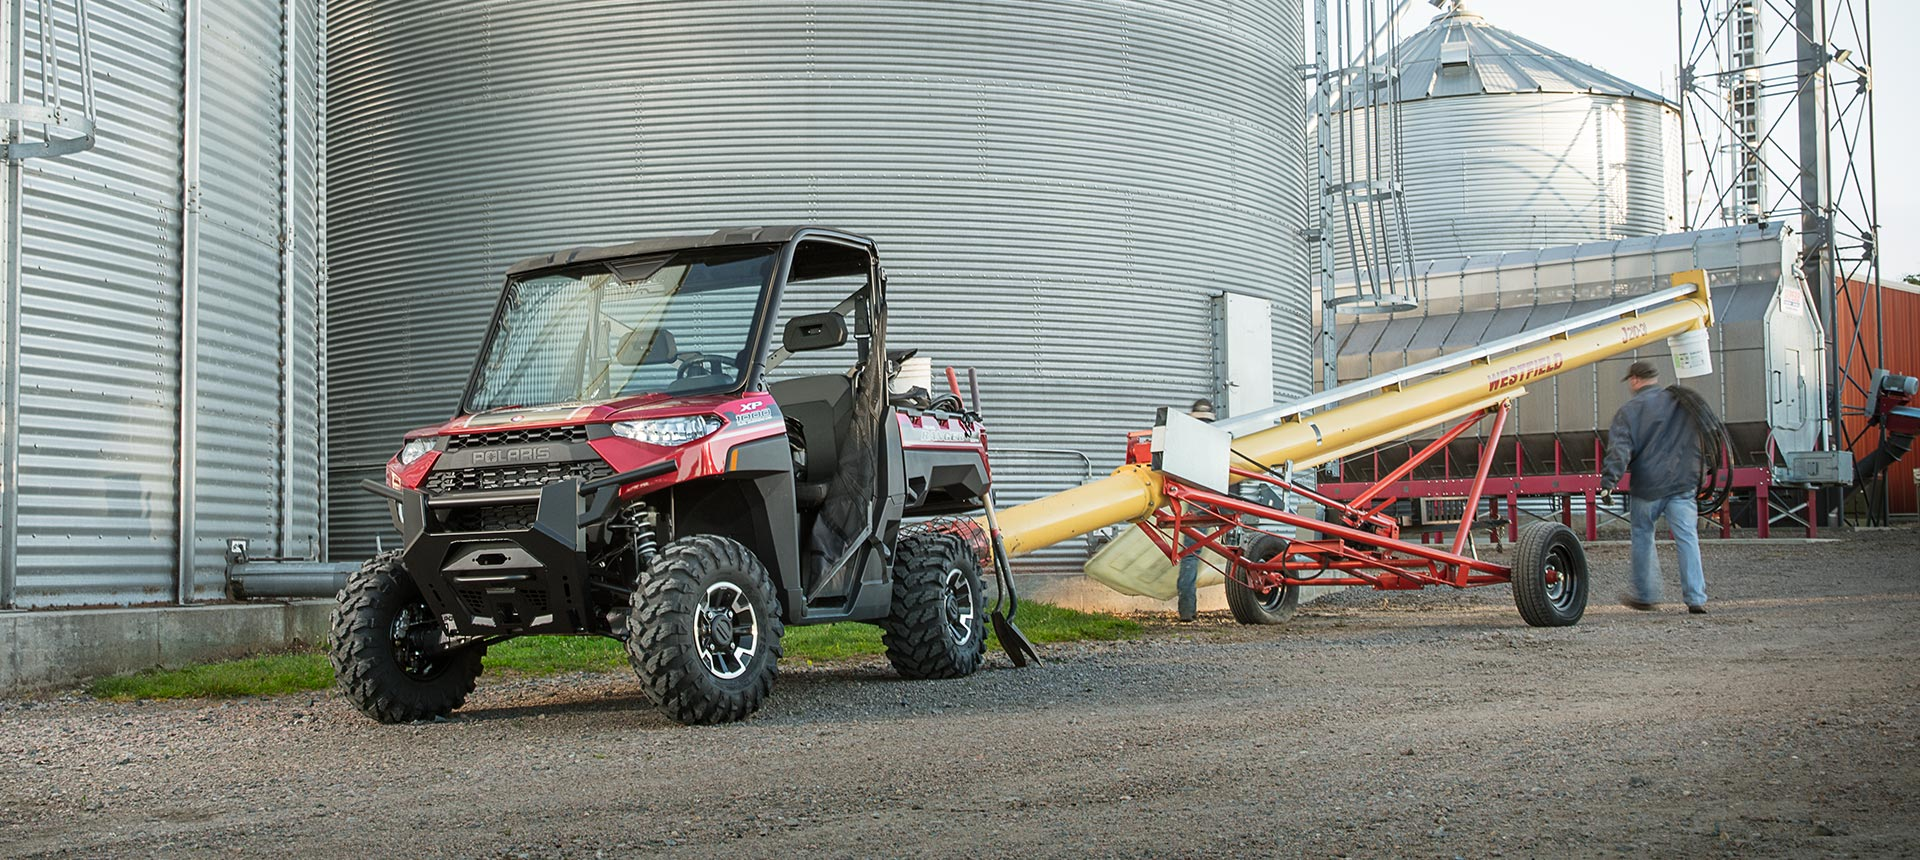 2019 Polaris Ranger XP 1000 EPS in Monroe, Michigan - Photo 5